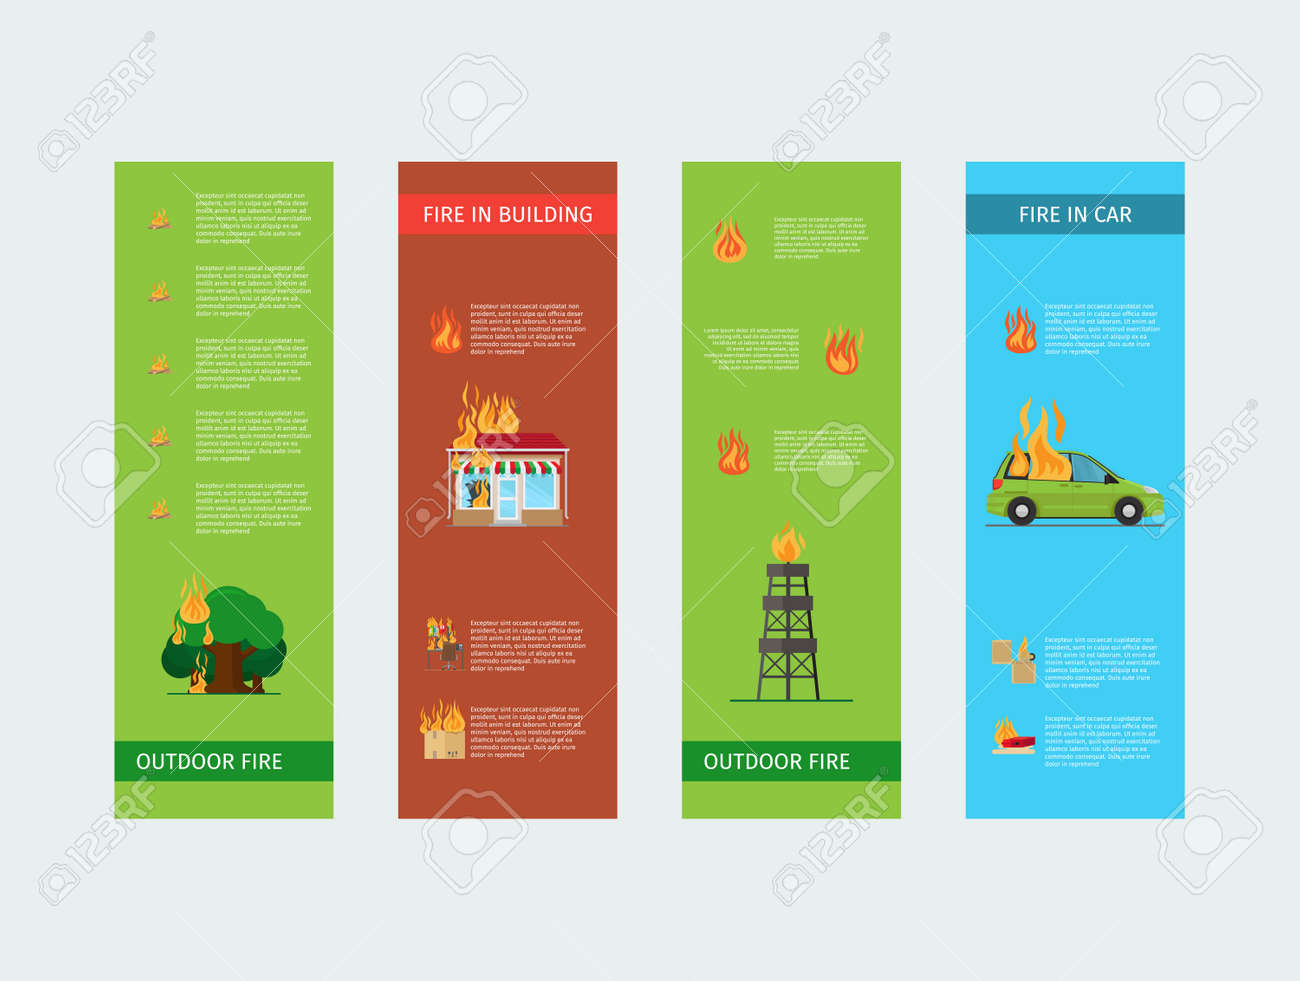 Fire risk vertical flyers. Fire in home and building, outdoor and in the car. Vector illustration - 166883126